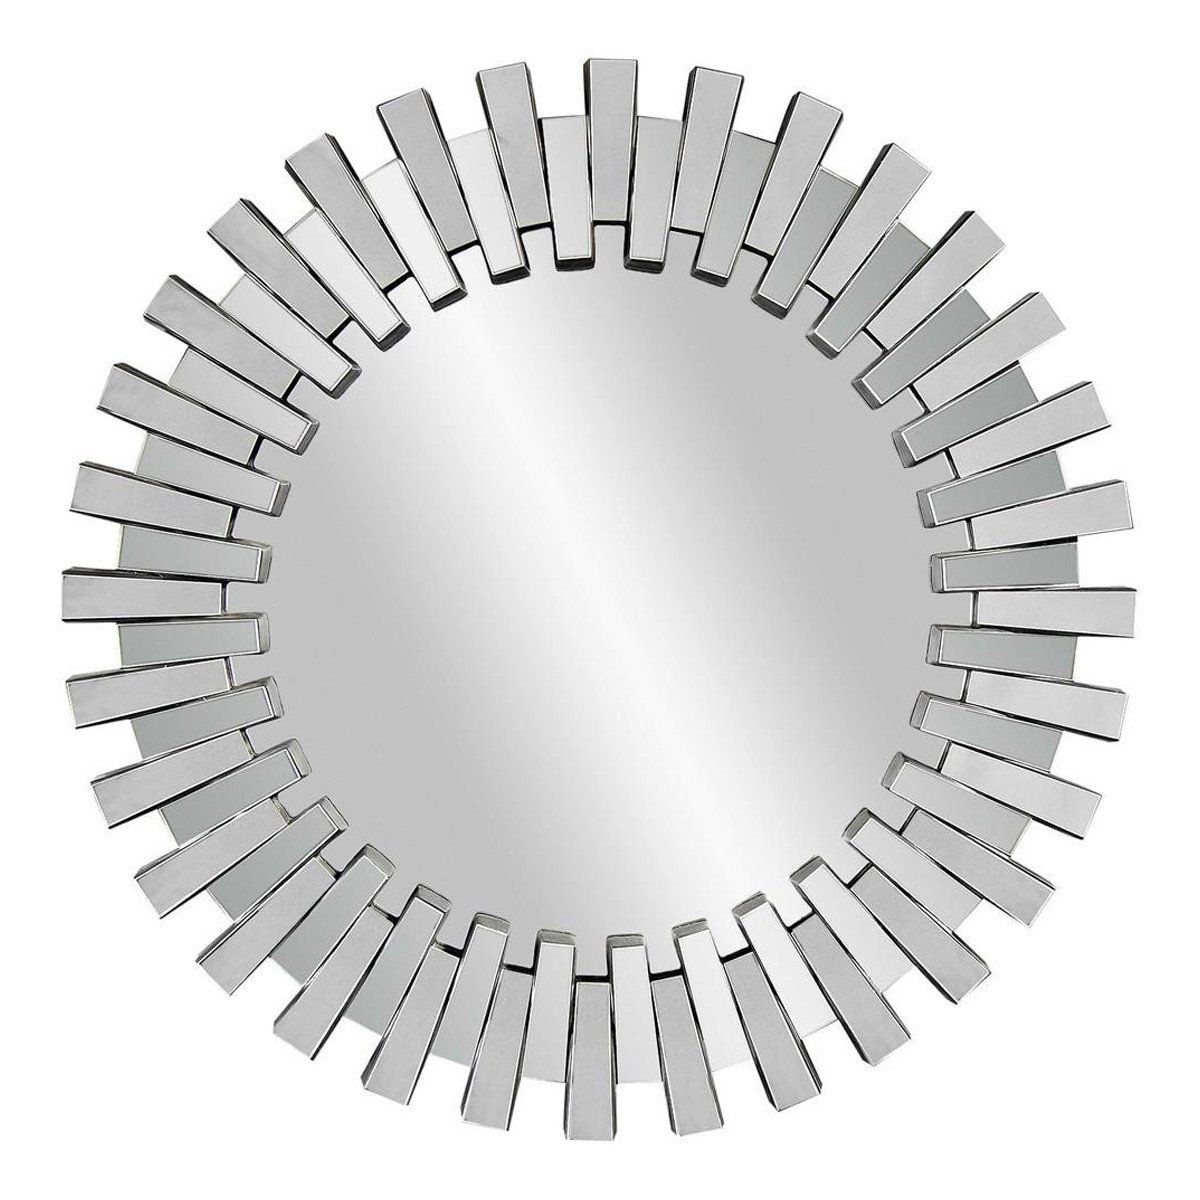 Sunburst Mirrors Have Been Brightening Interiors For Intended For Deniece Sunburst Round Wall Mirrors (View 24 of 30)